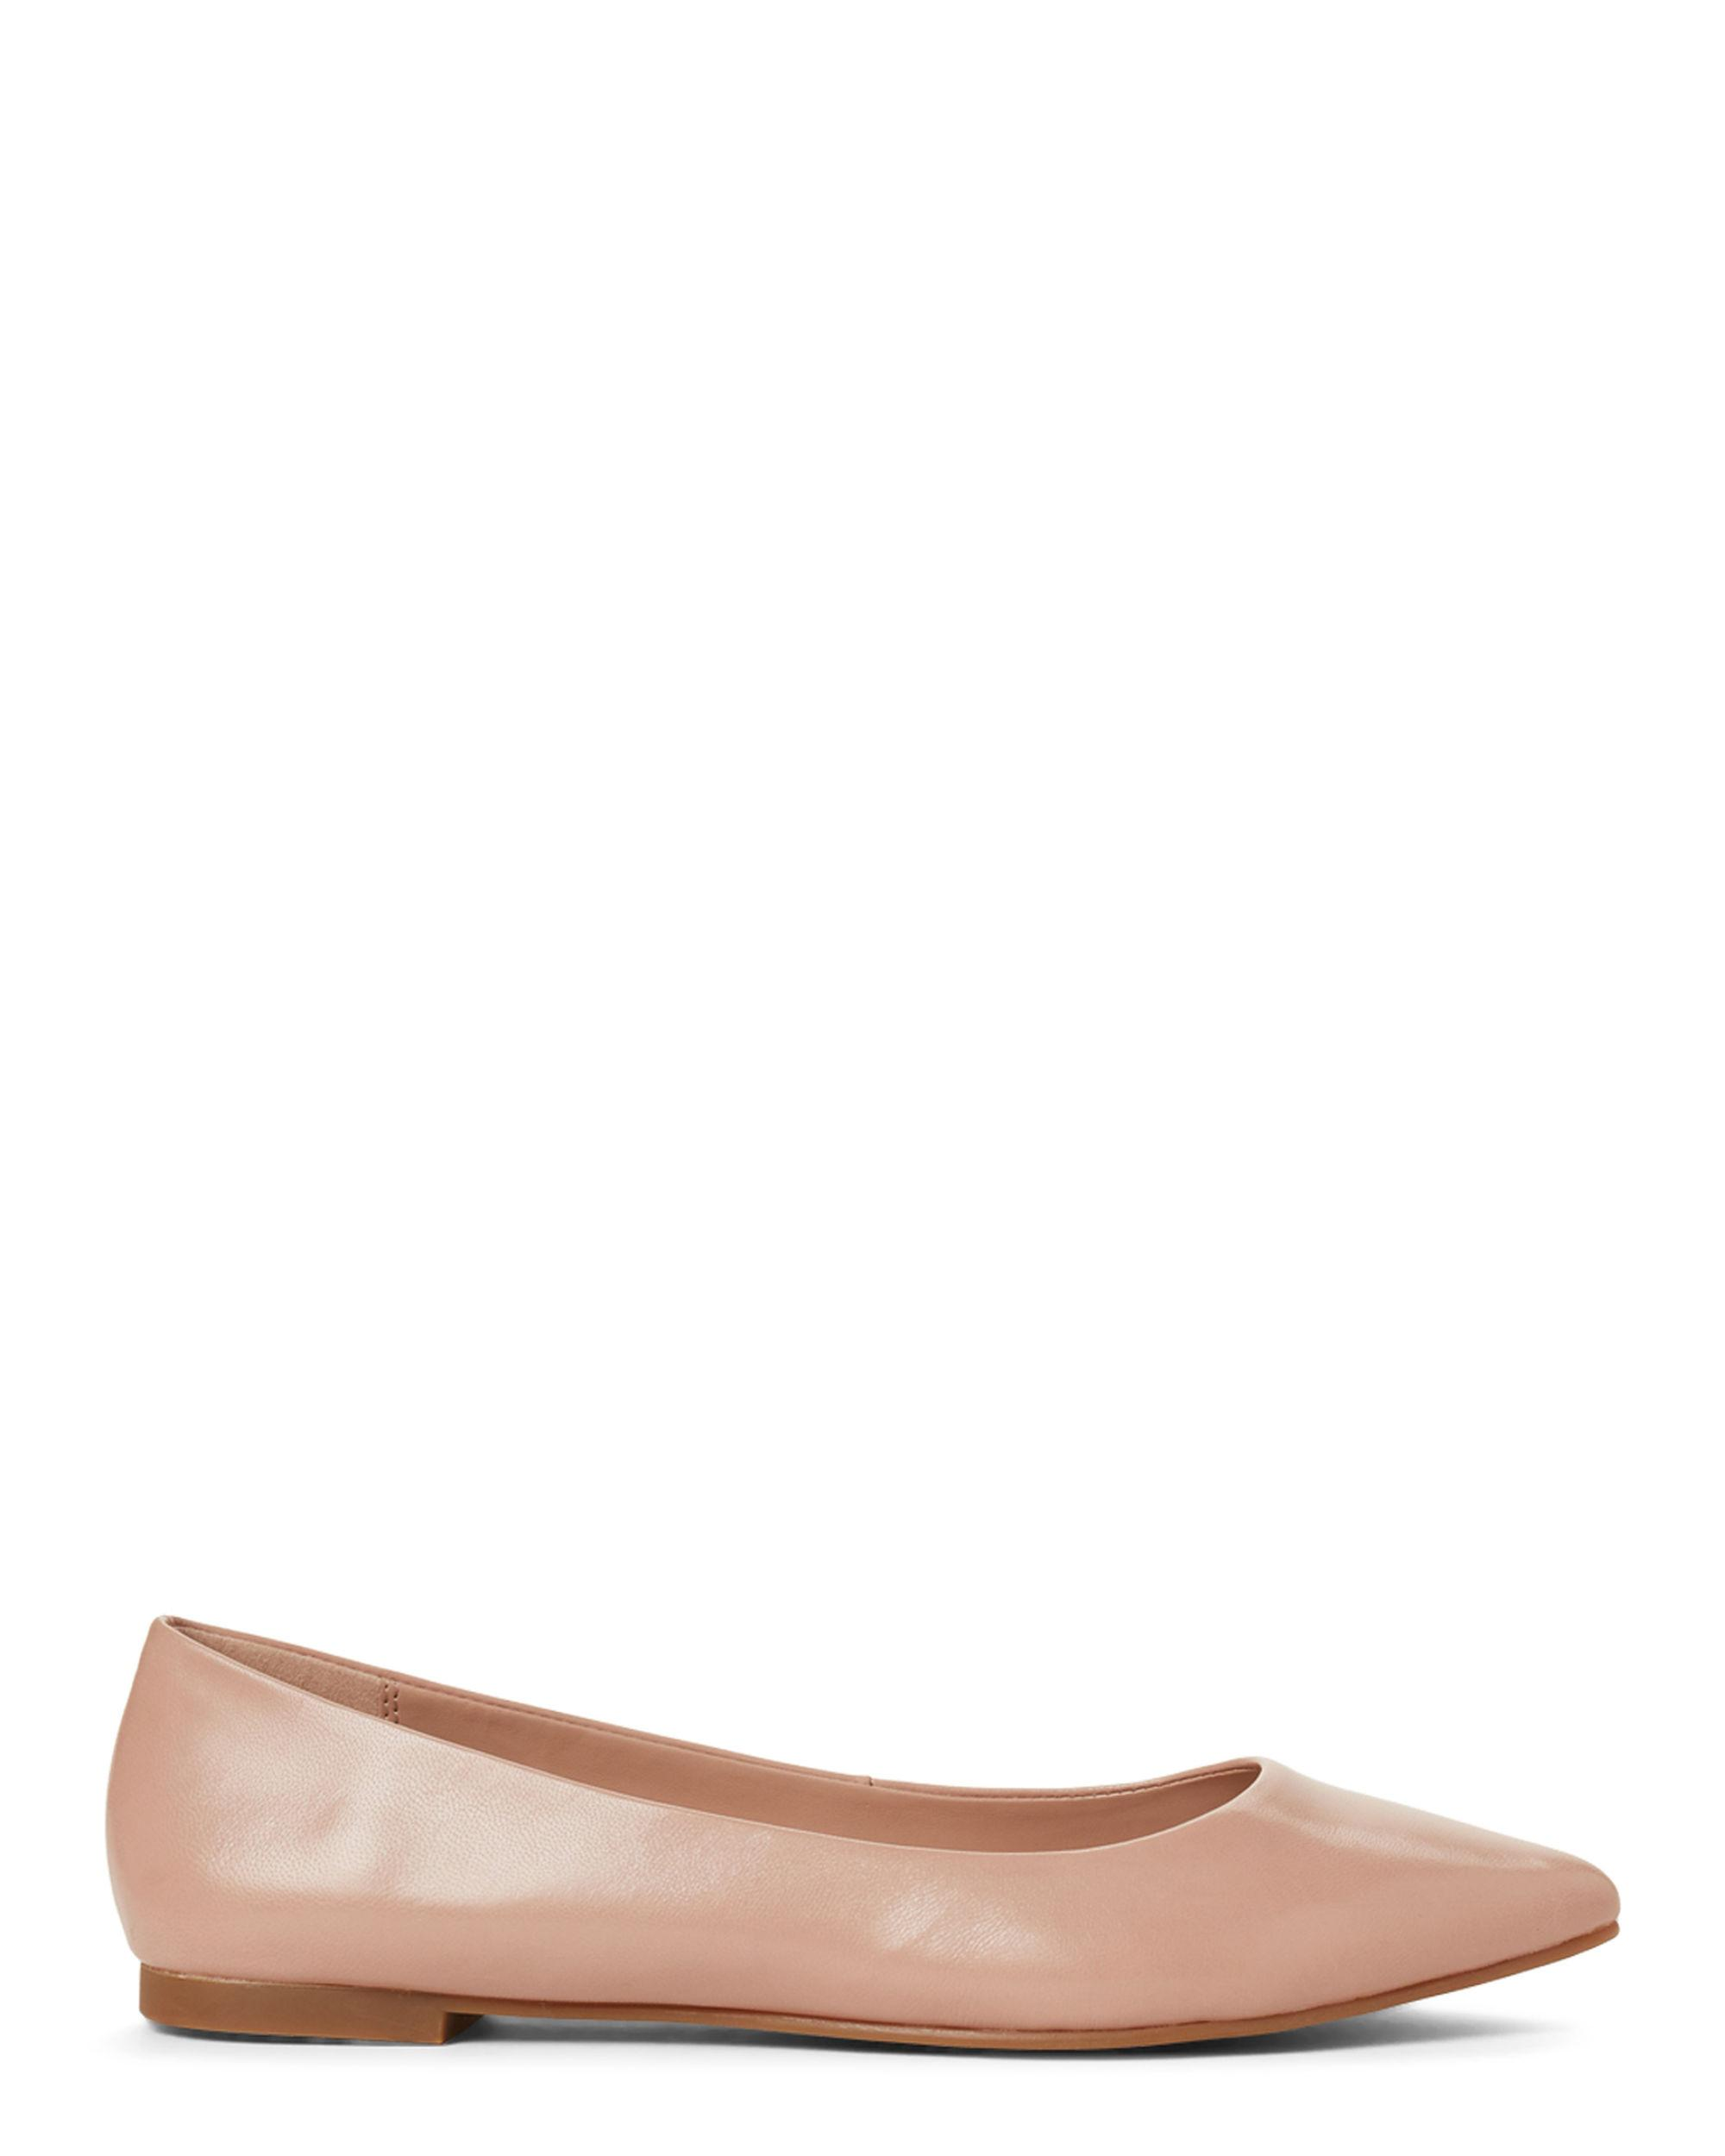 0ee1d667b981a5 Lyst - BCBGeneration Shell Millie Leather Flats